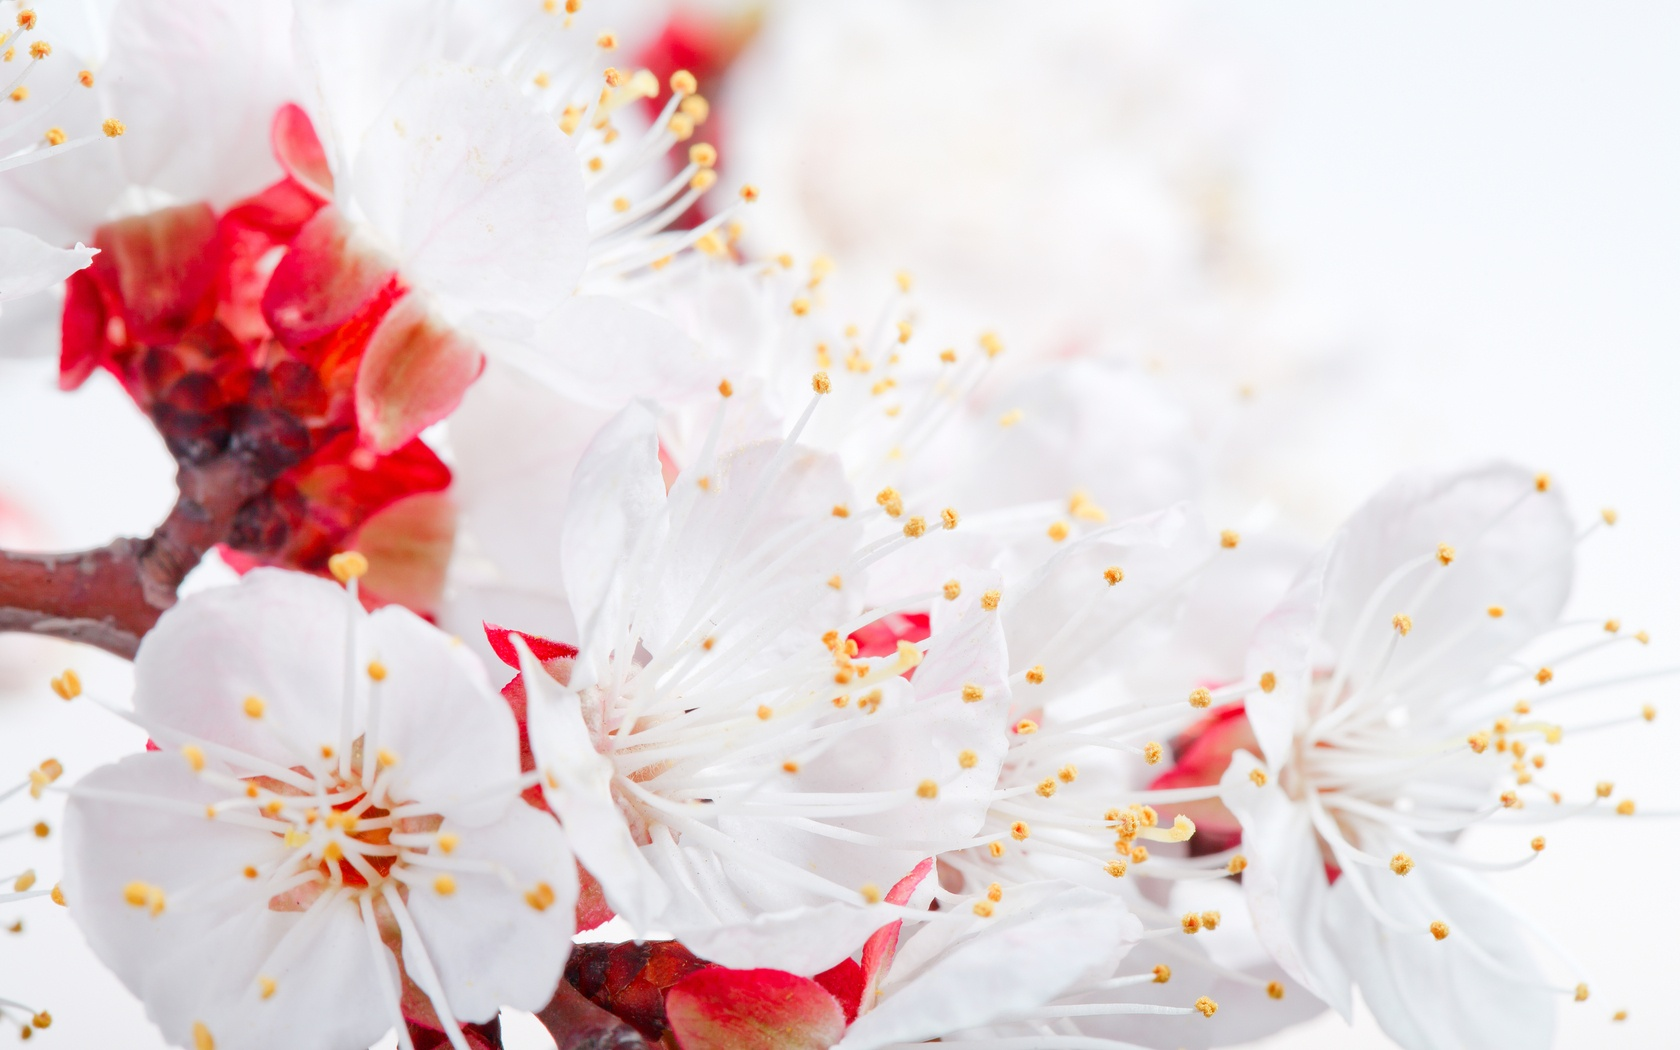 Spring Apple Blossom Branch Wallpapers